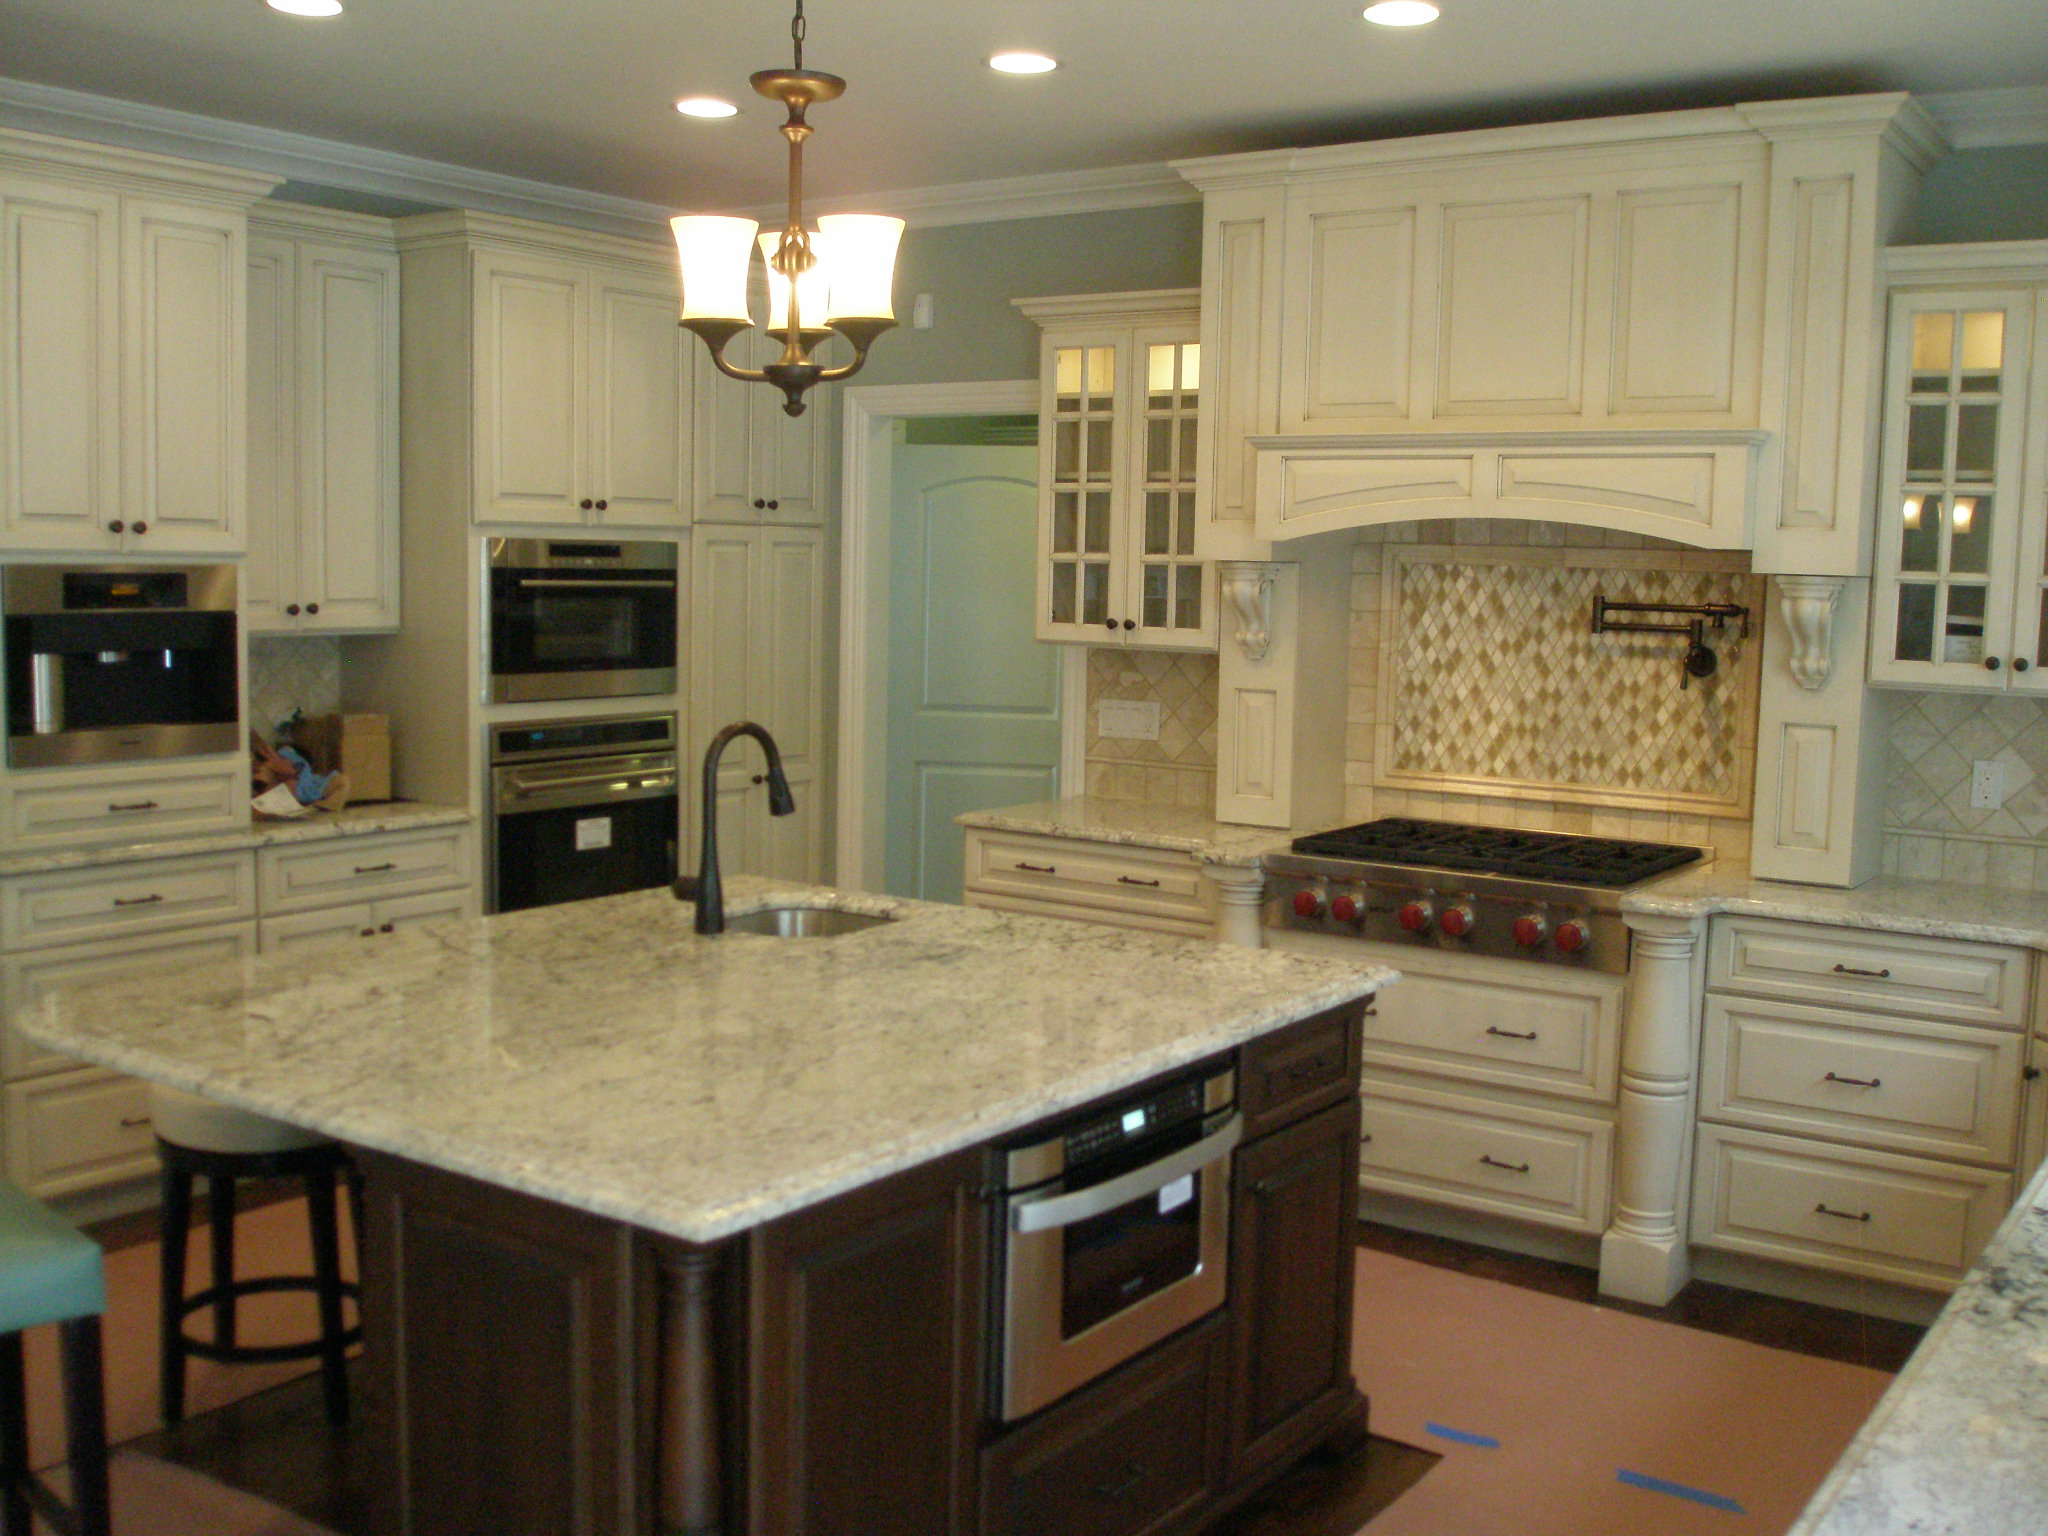 kitchen pics (277)